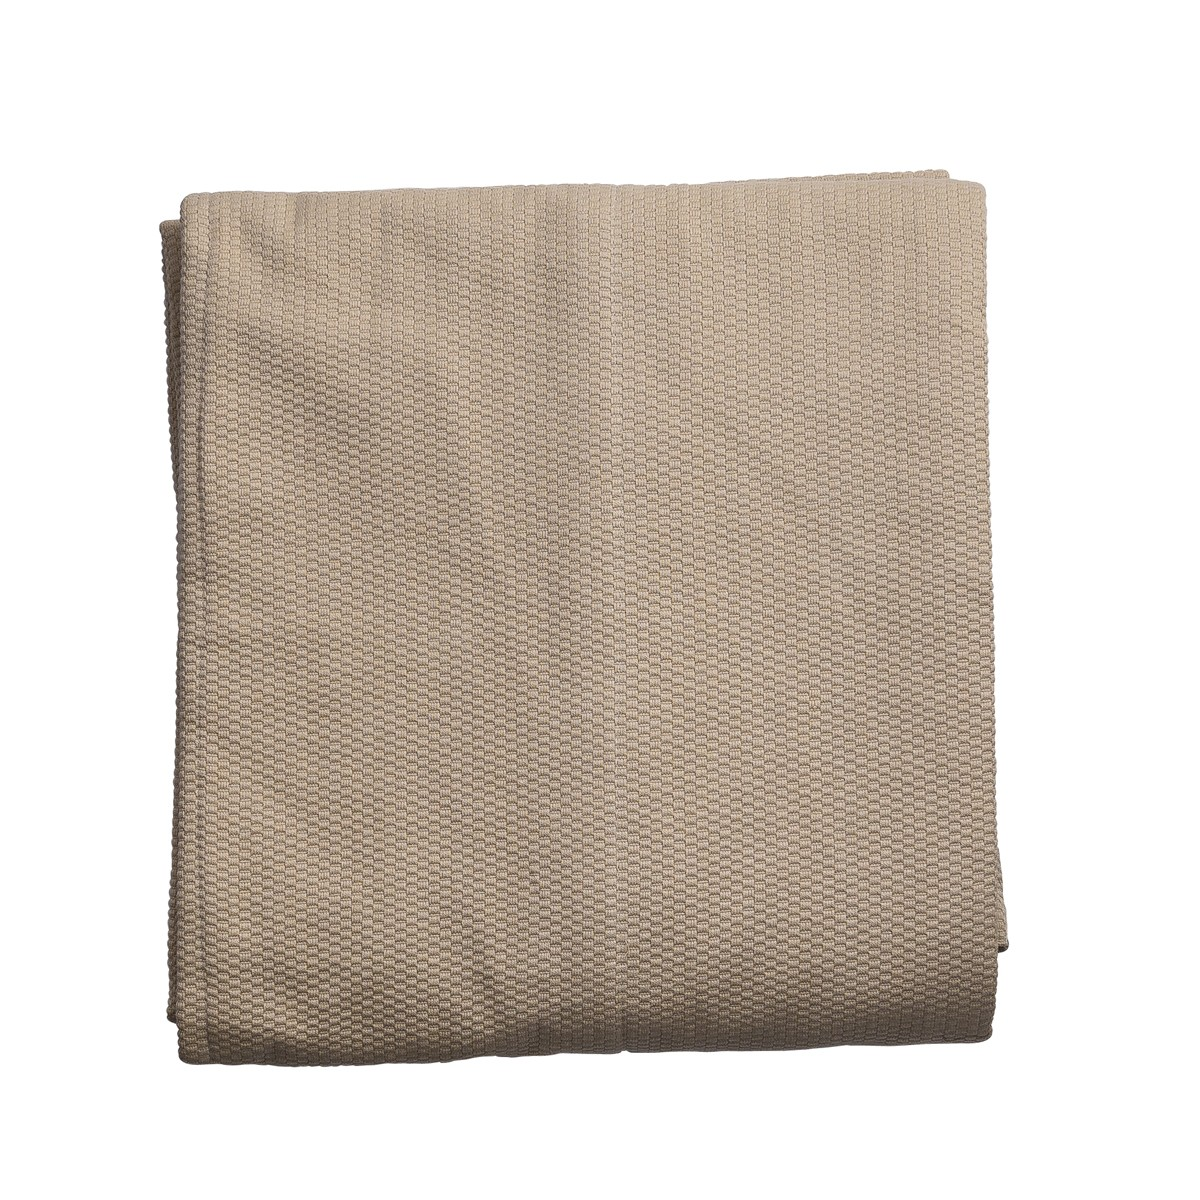 Single Beige panel throw